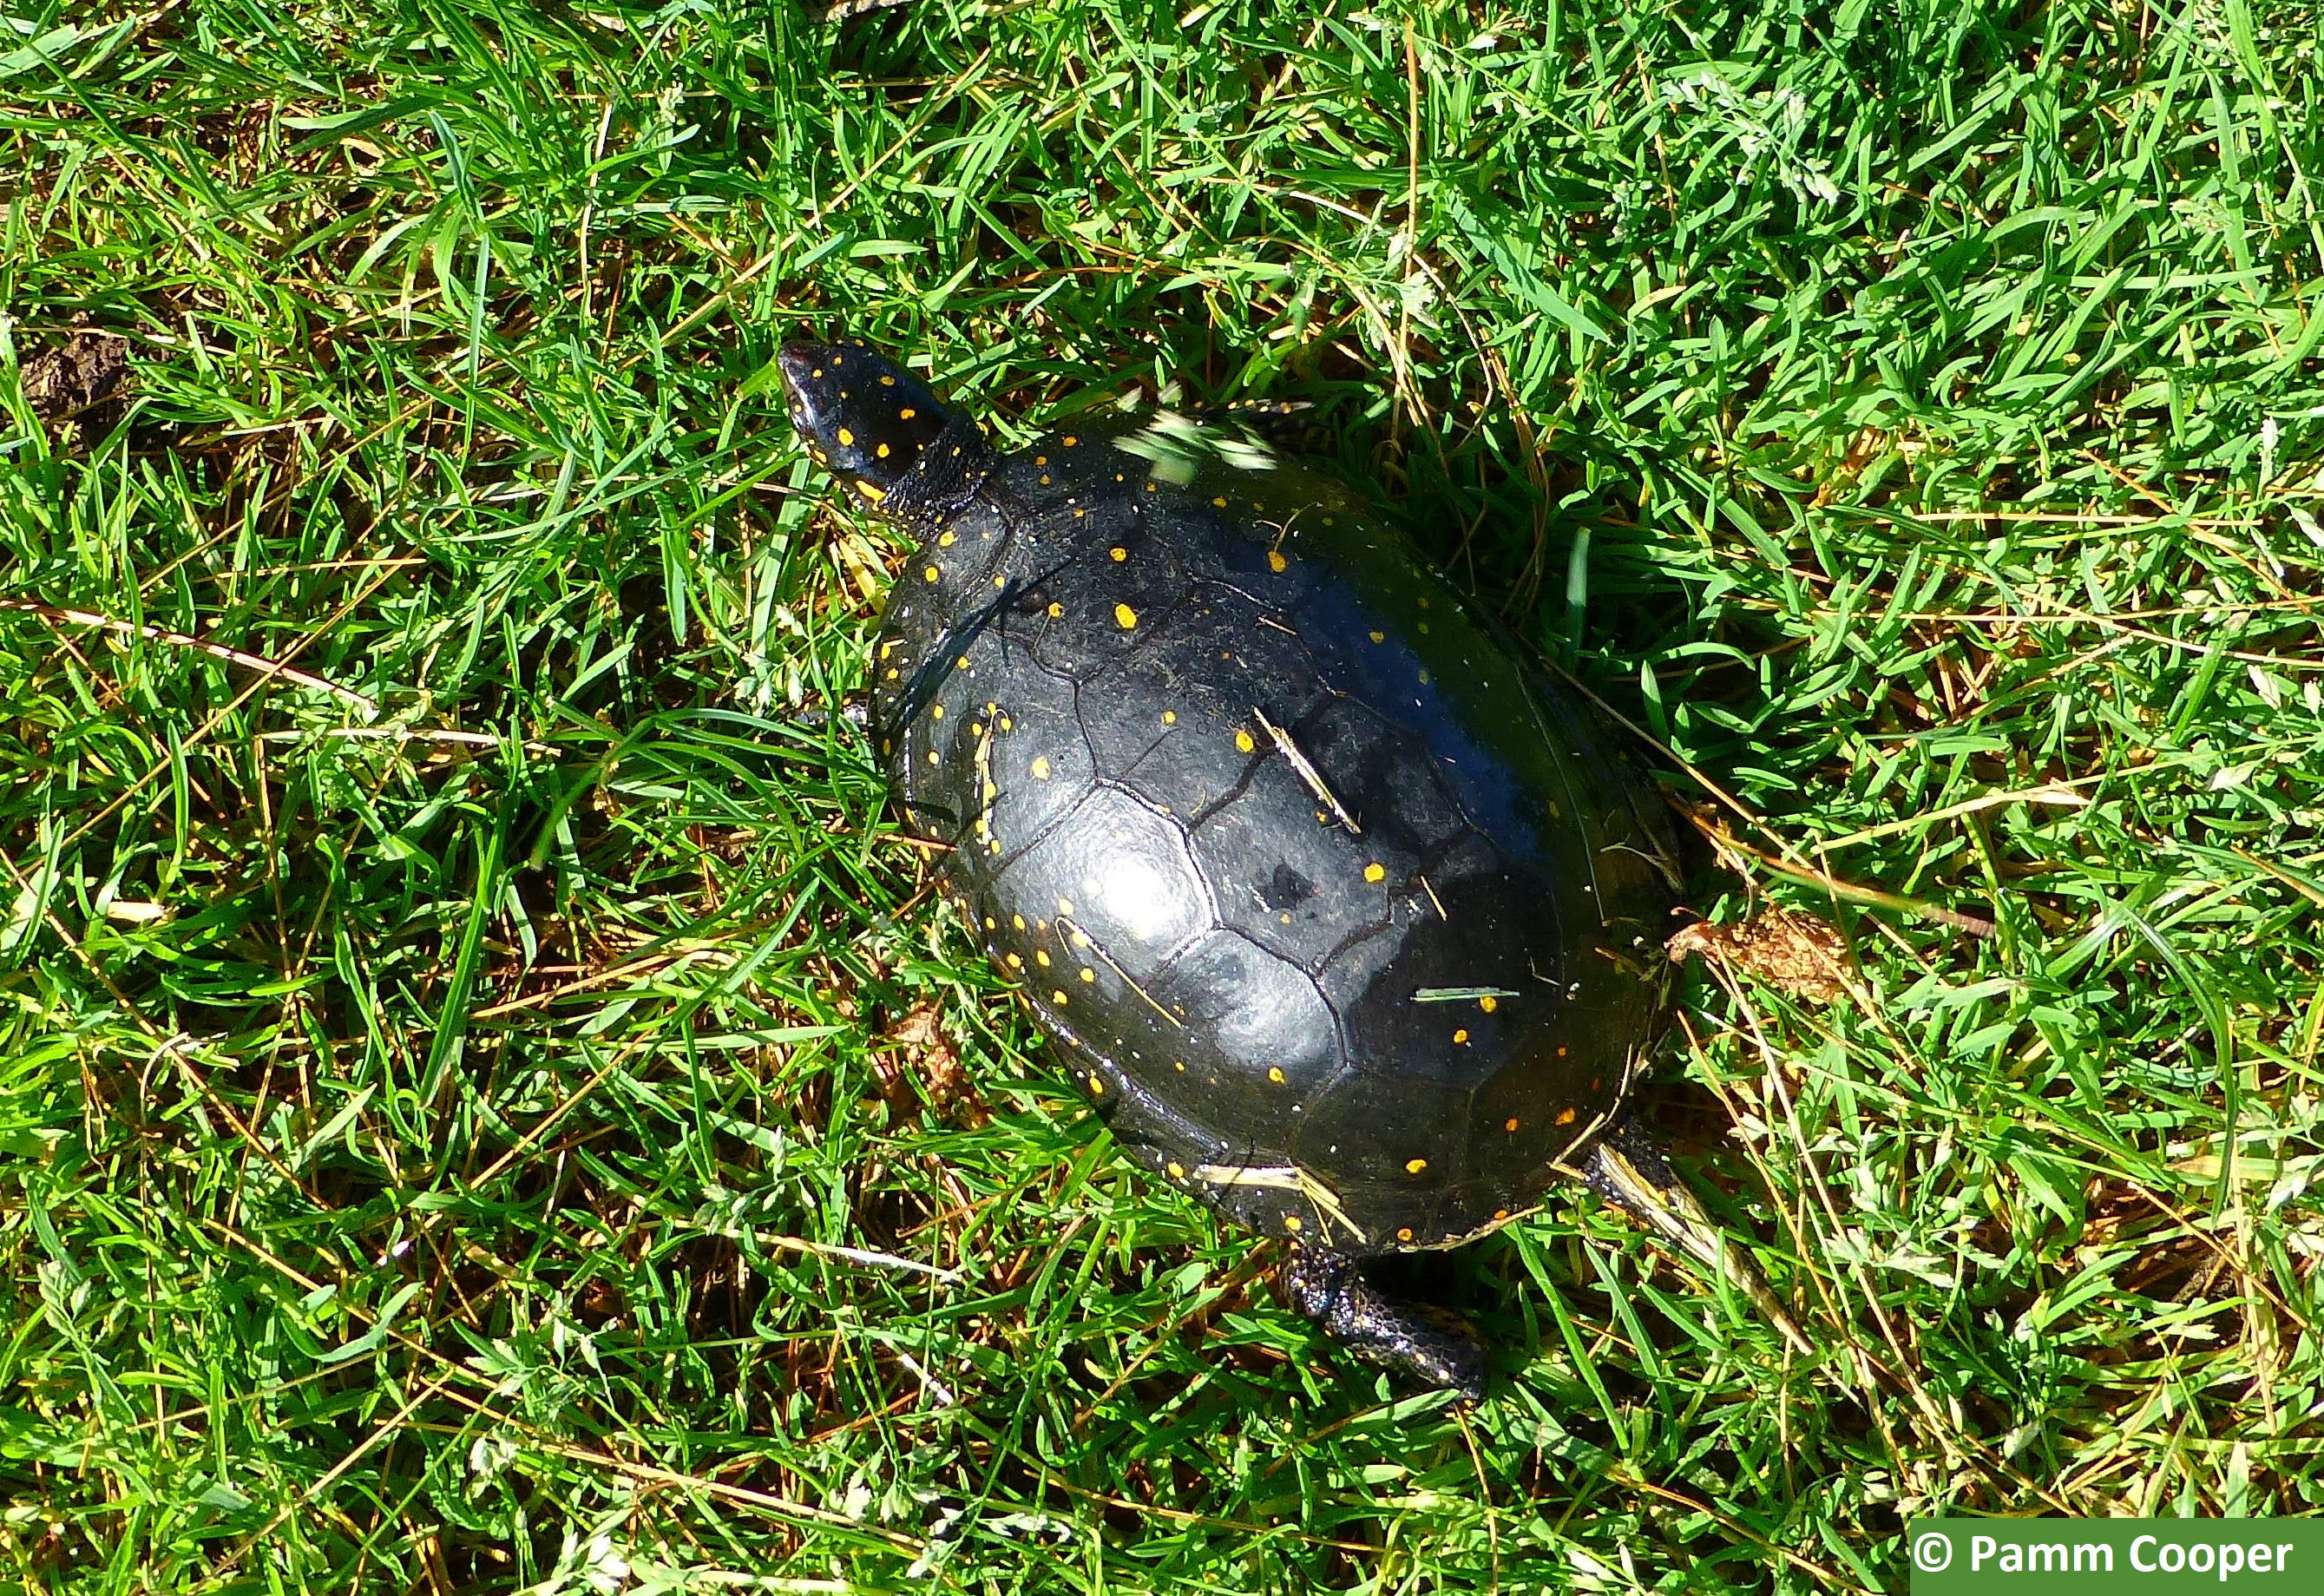 spotted turtle with constellation of spots May 30 2018